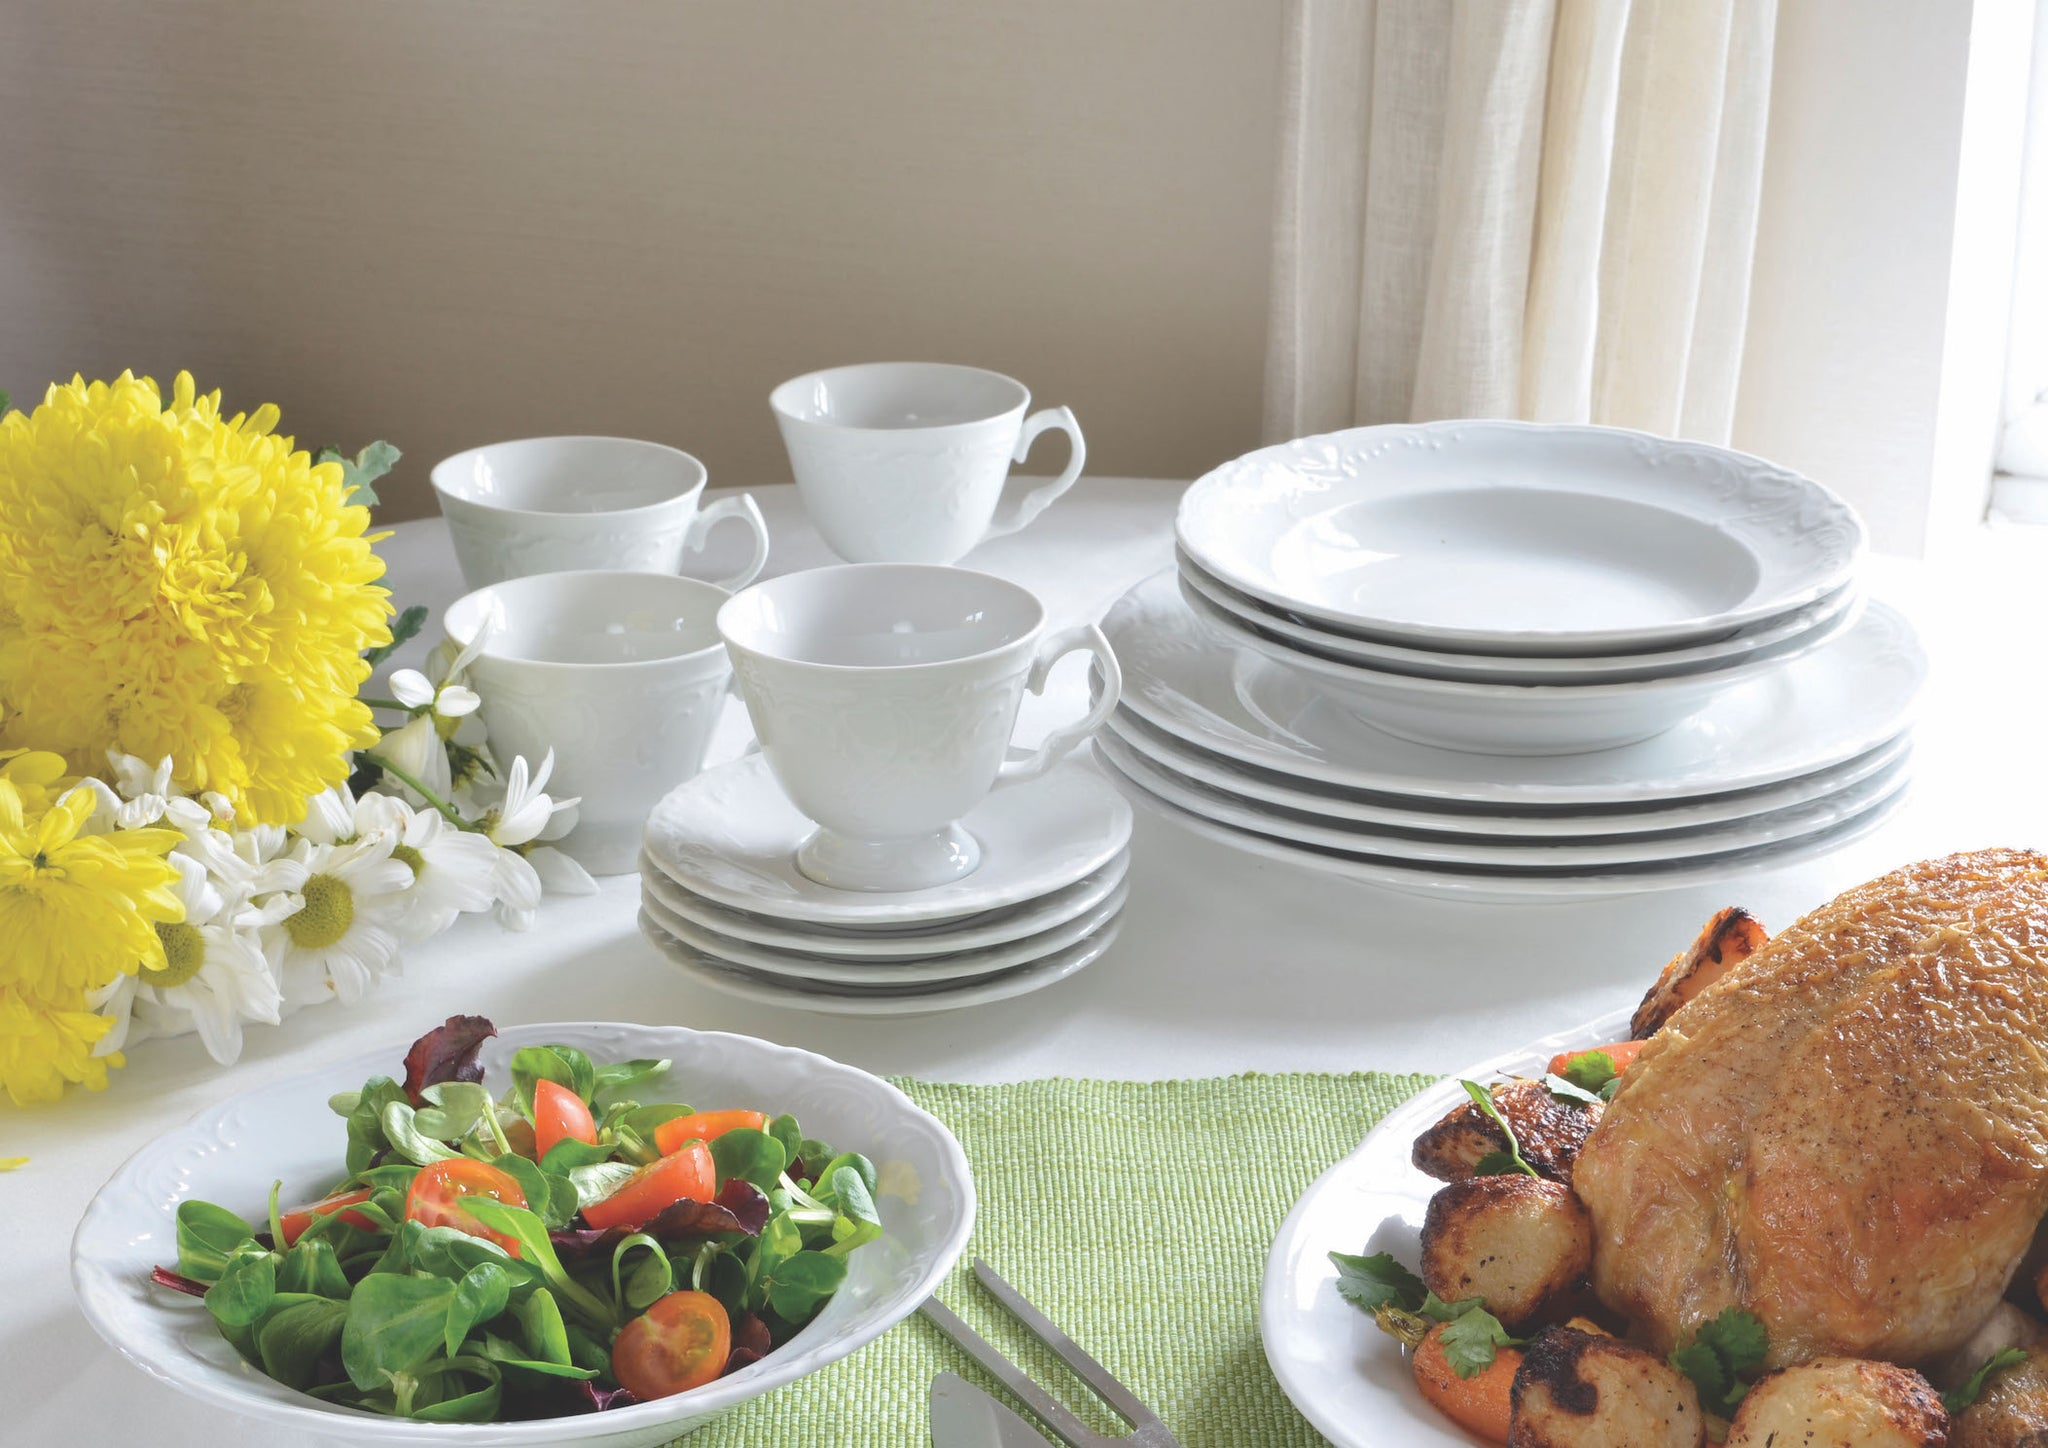 Canterbury Collection Soup Bowls